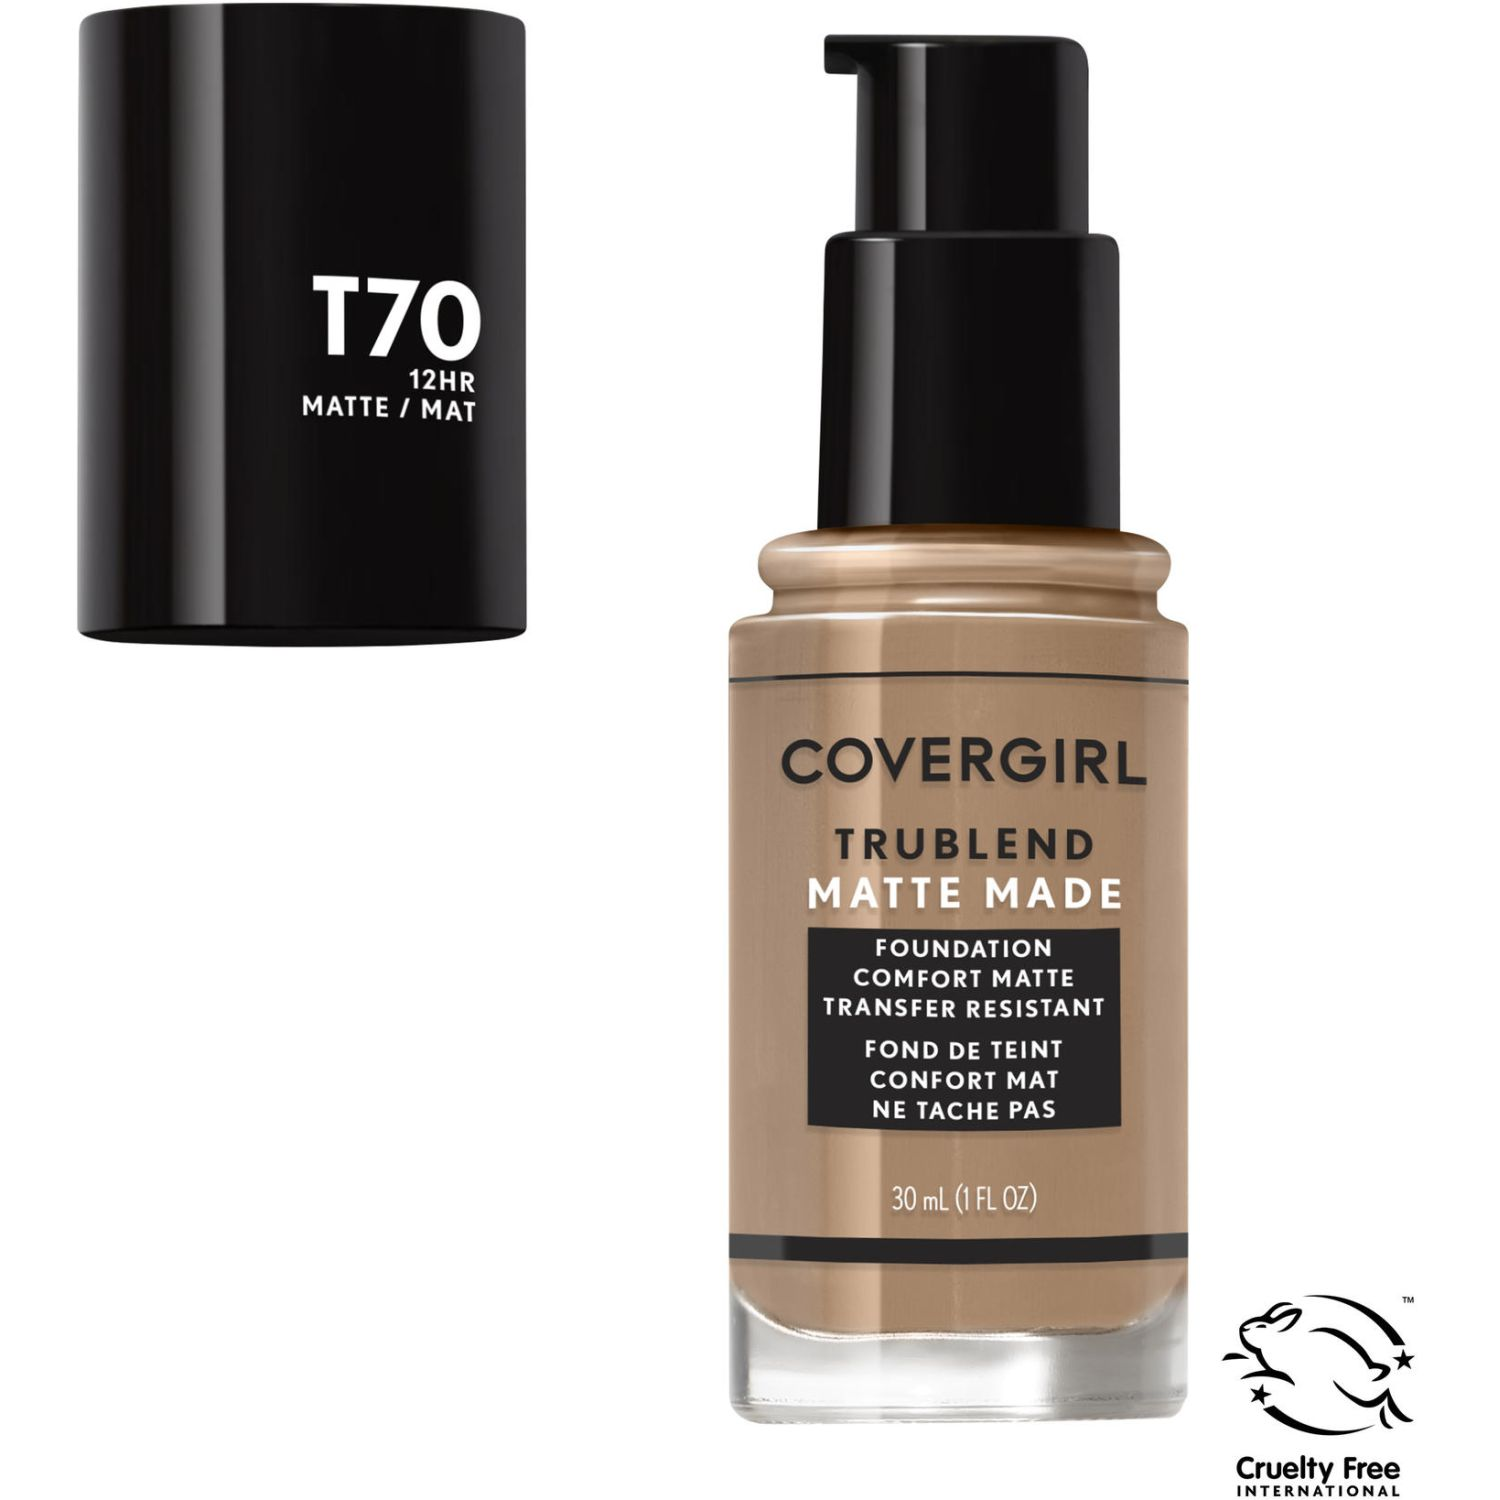 Covergirl Base Trublend Matte Made Liquid Makeup CARAMEL T70 Bases